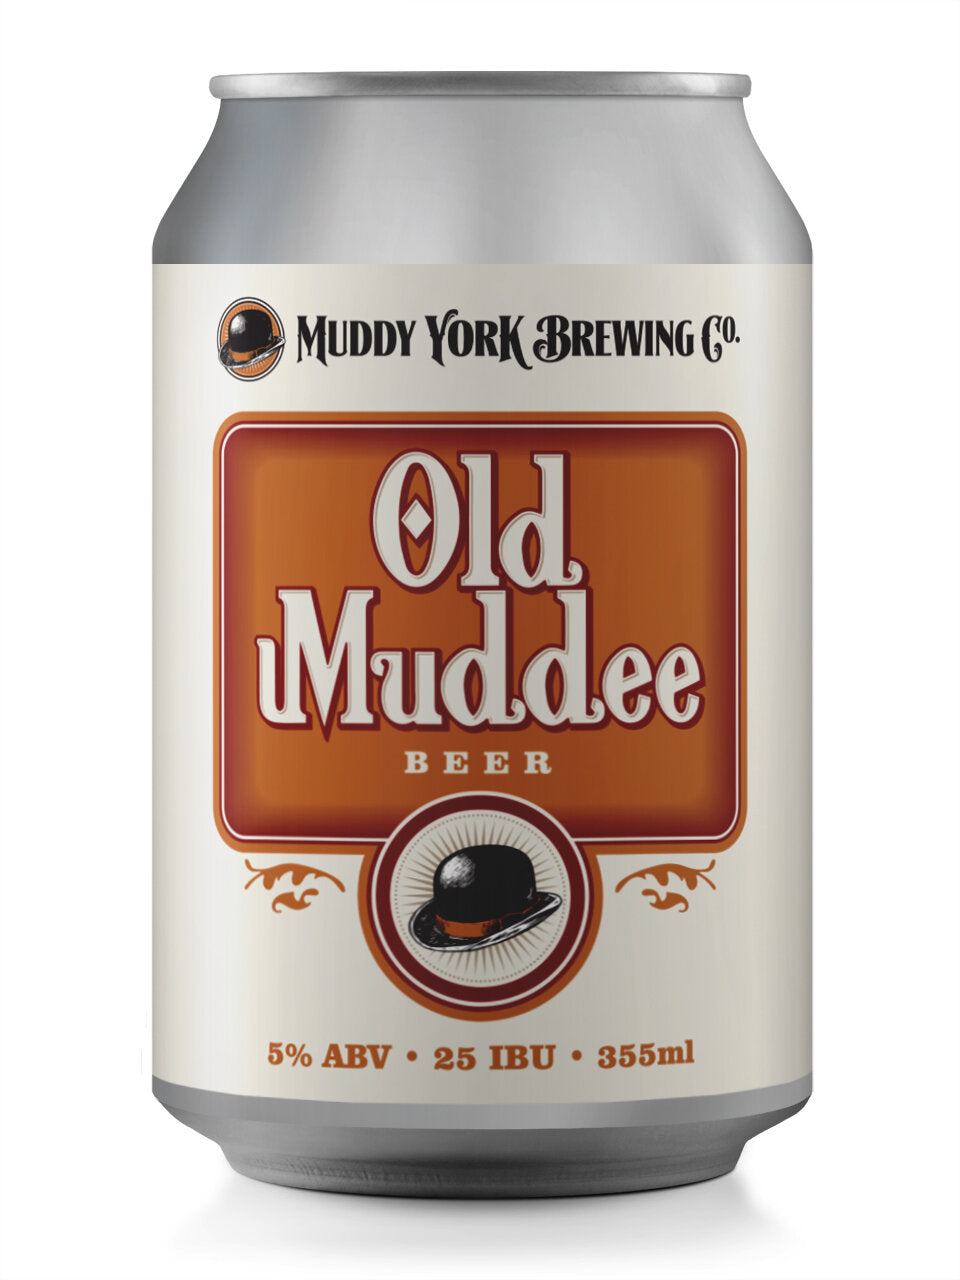 Old Muddee - Muddy York